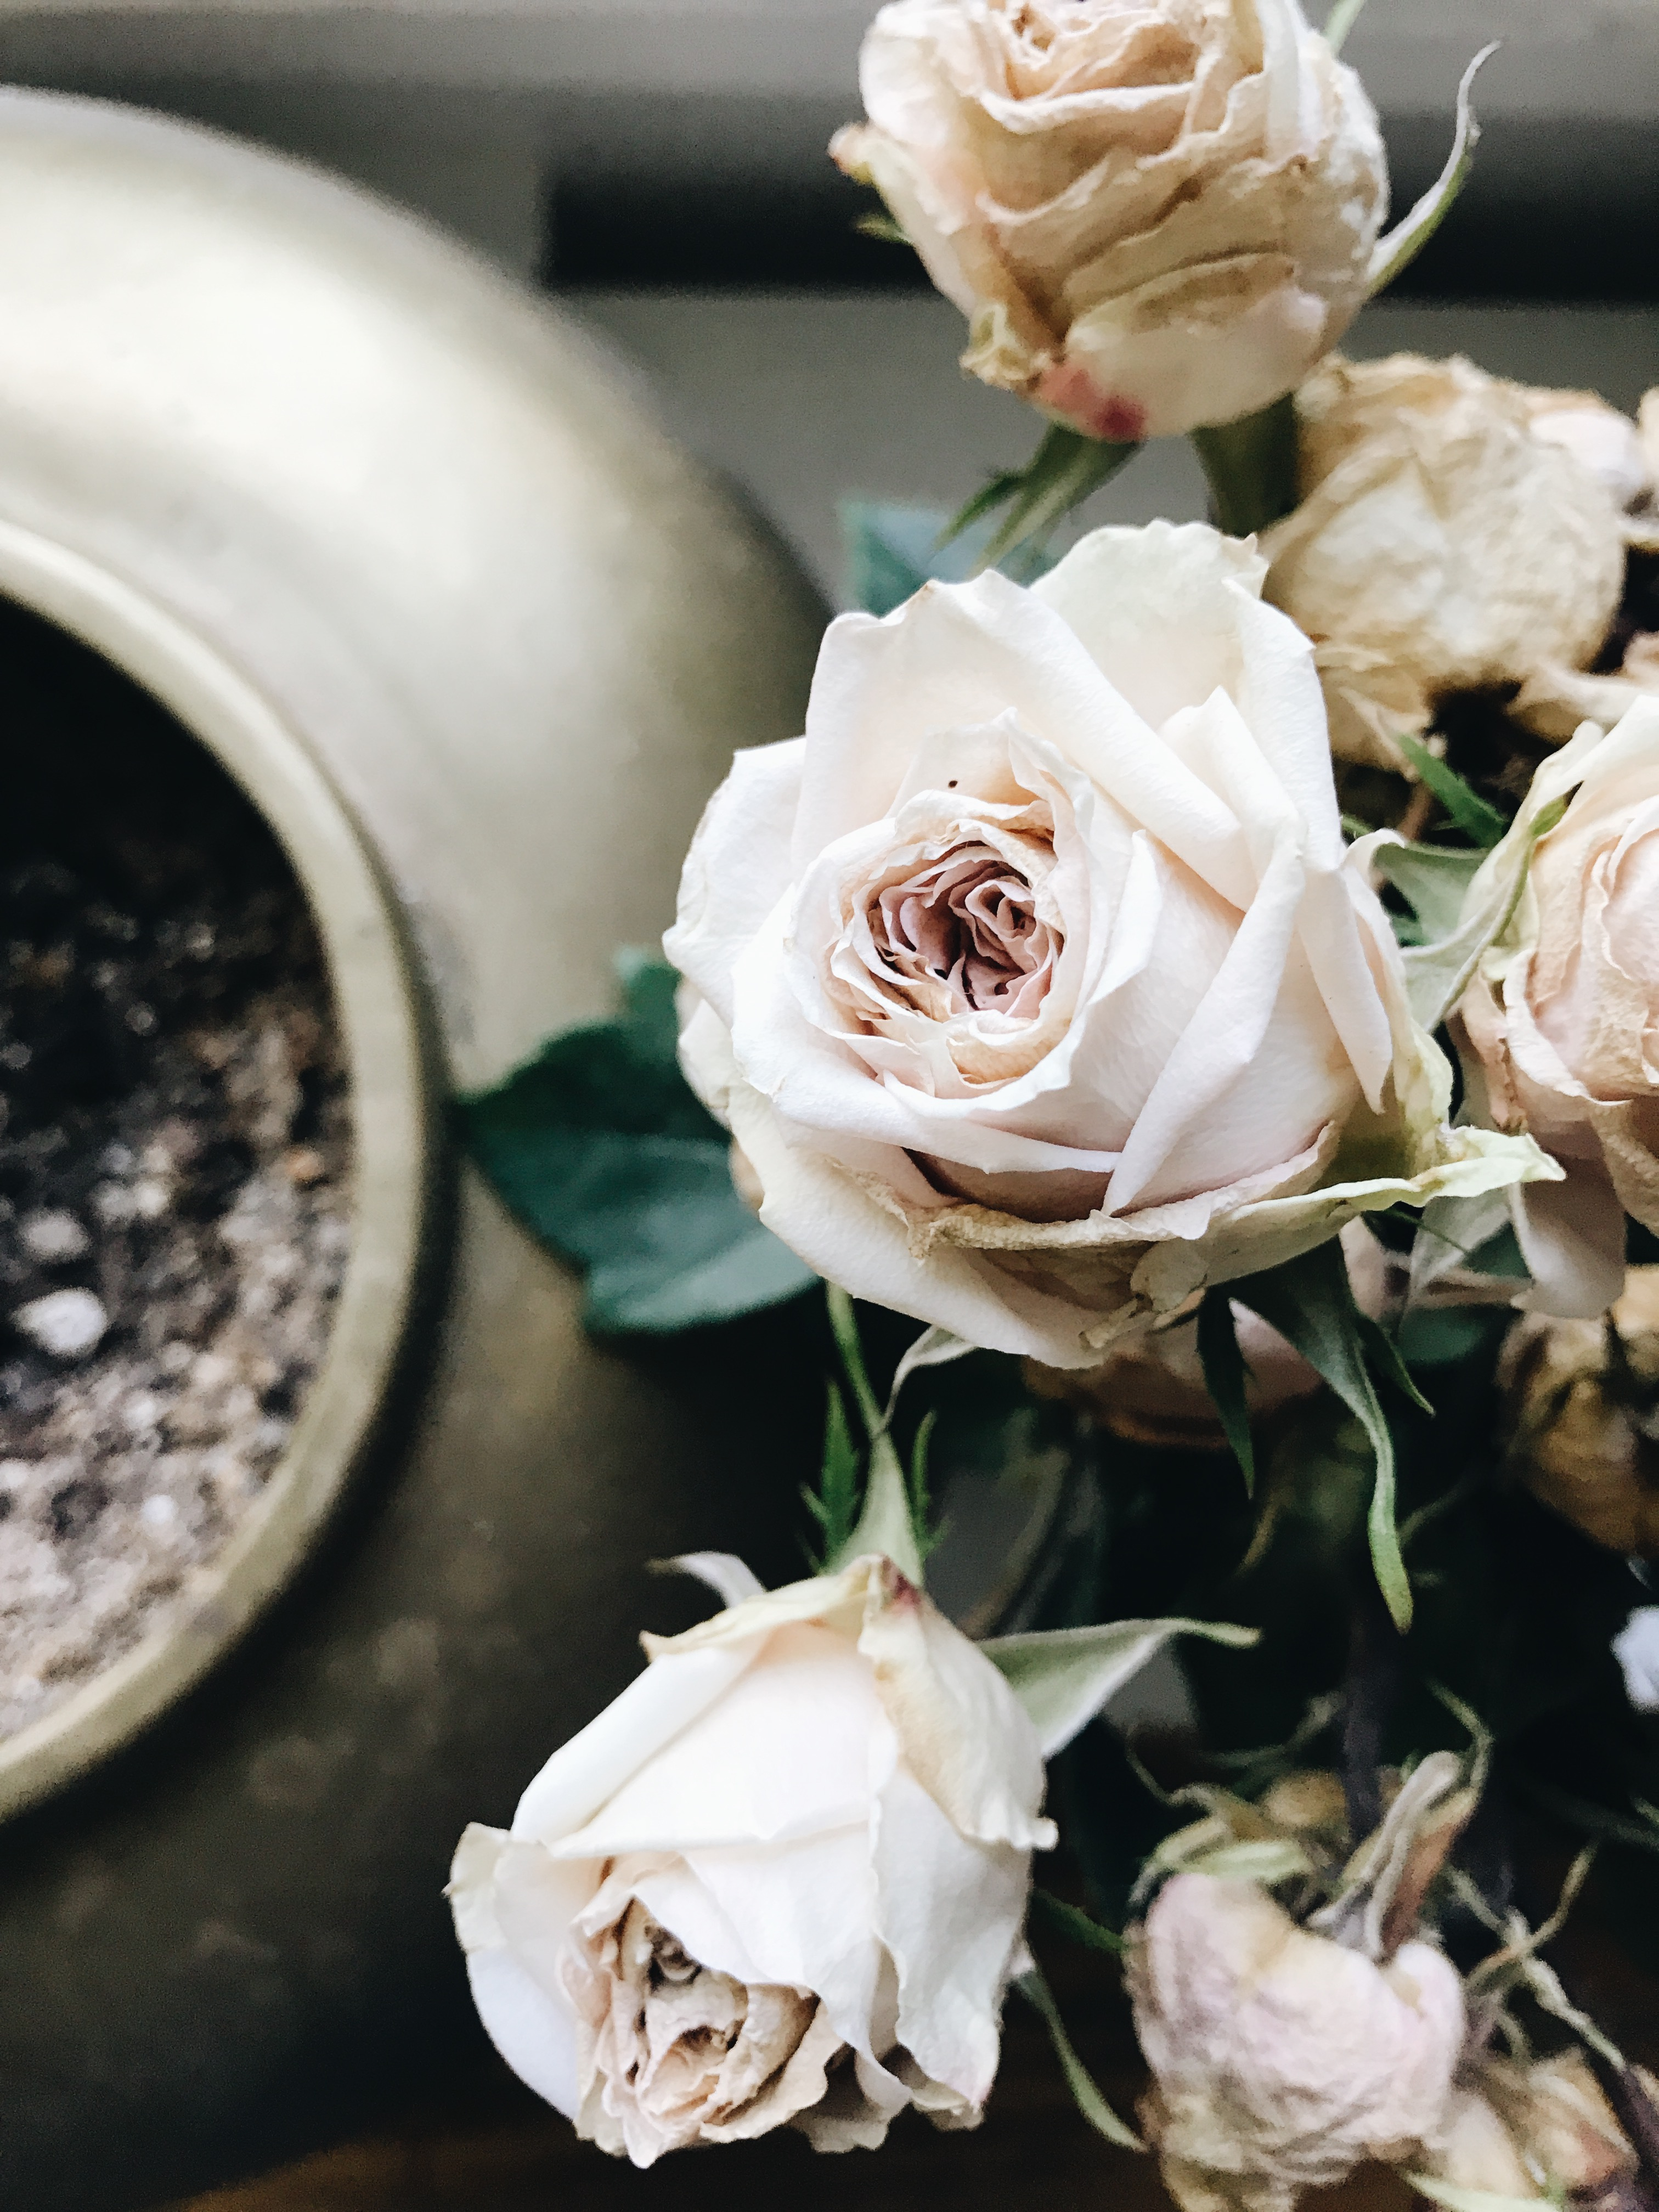 dying roses